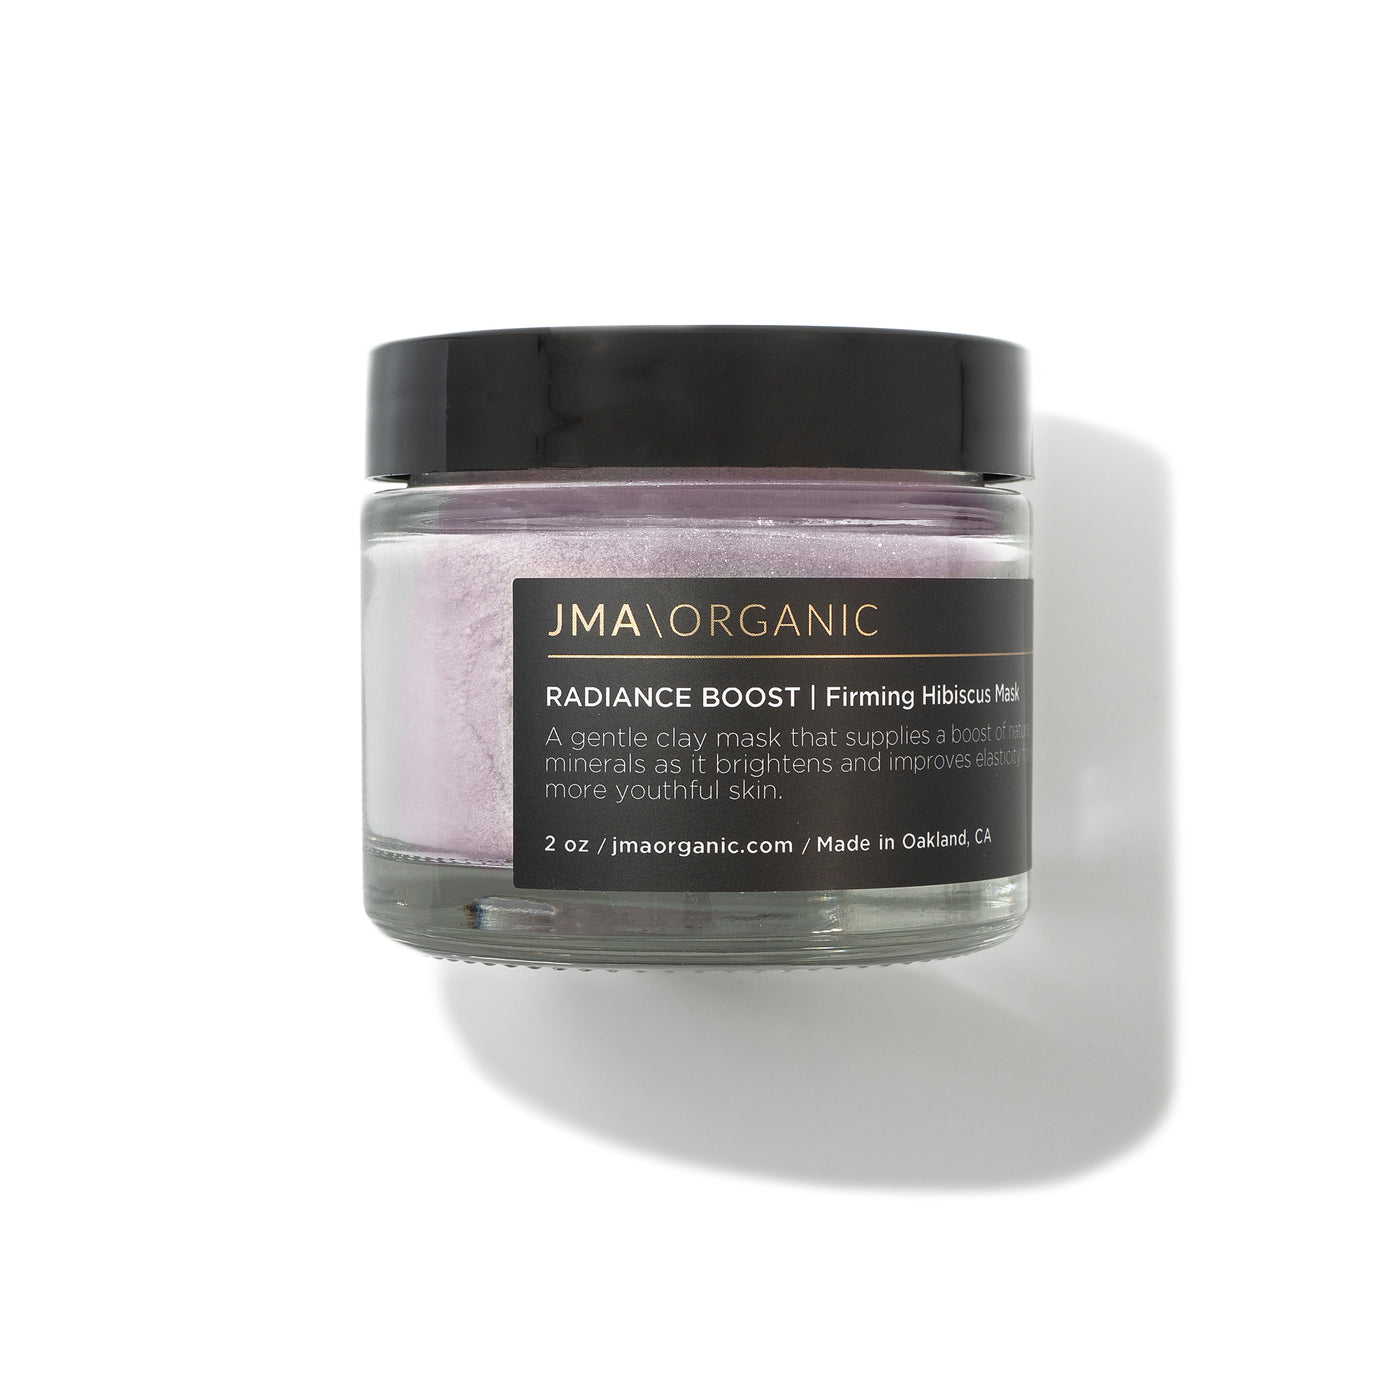 JMA Organic | RADIANCE BOOST | Firming Hibiscus Mask